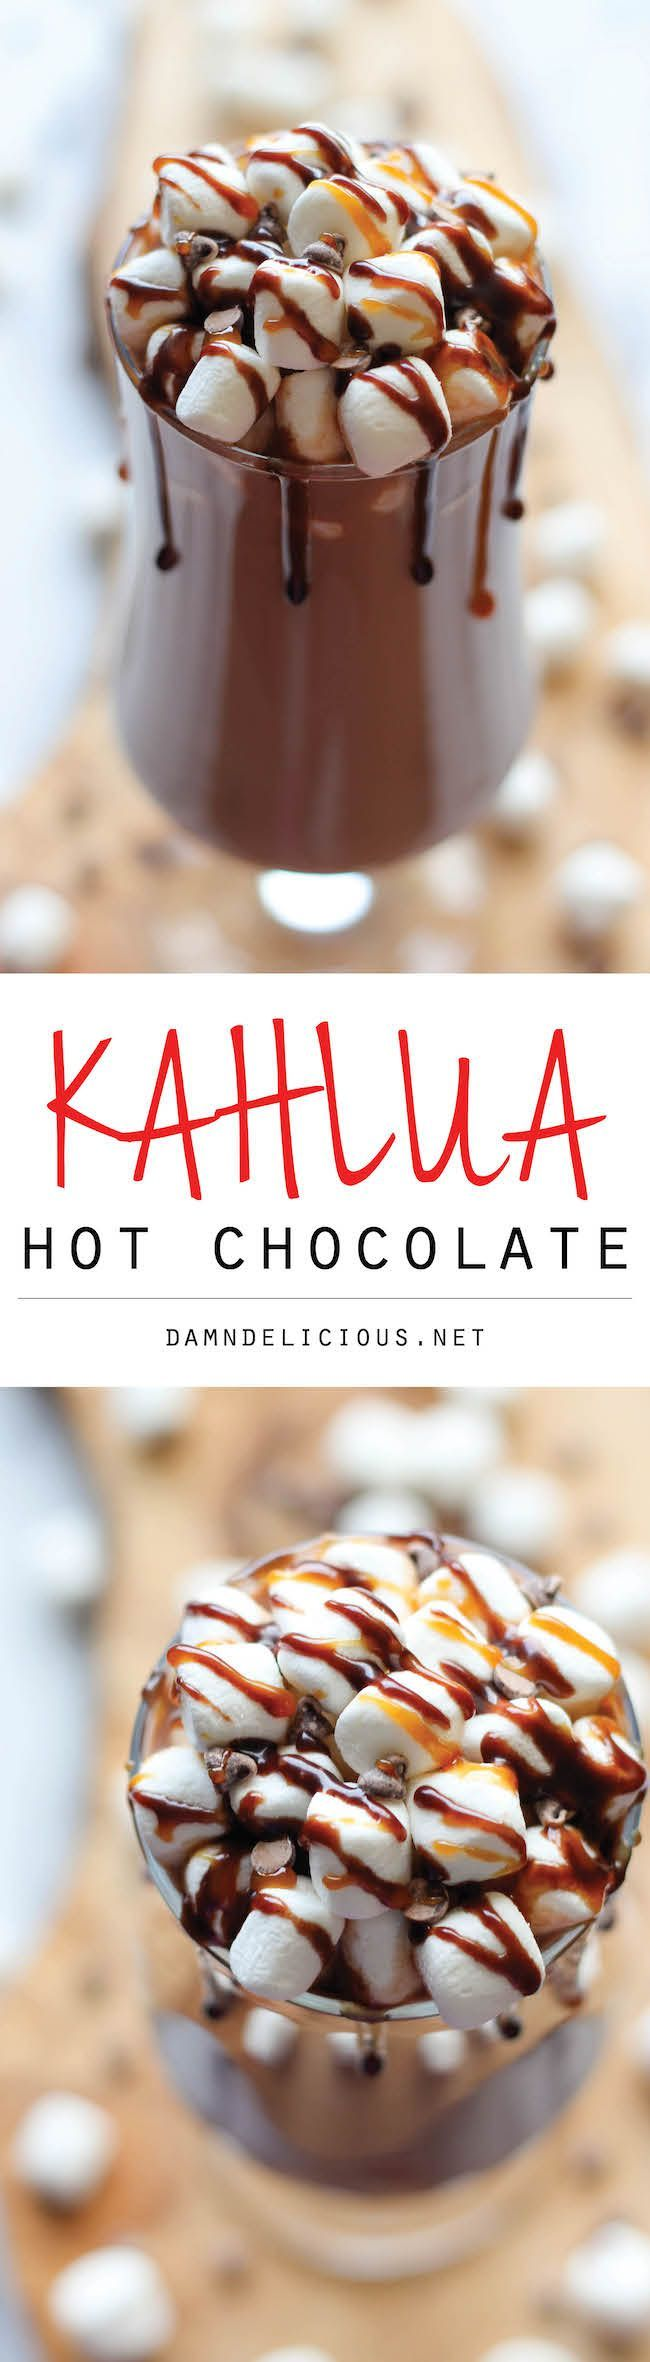 Kahlua Hot Chocolate - So cozy, so boozy, and so perfect for these chilly nights!